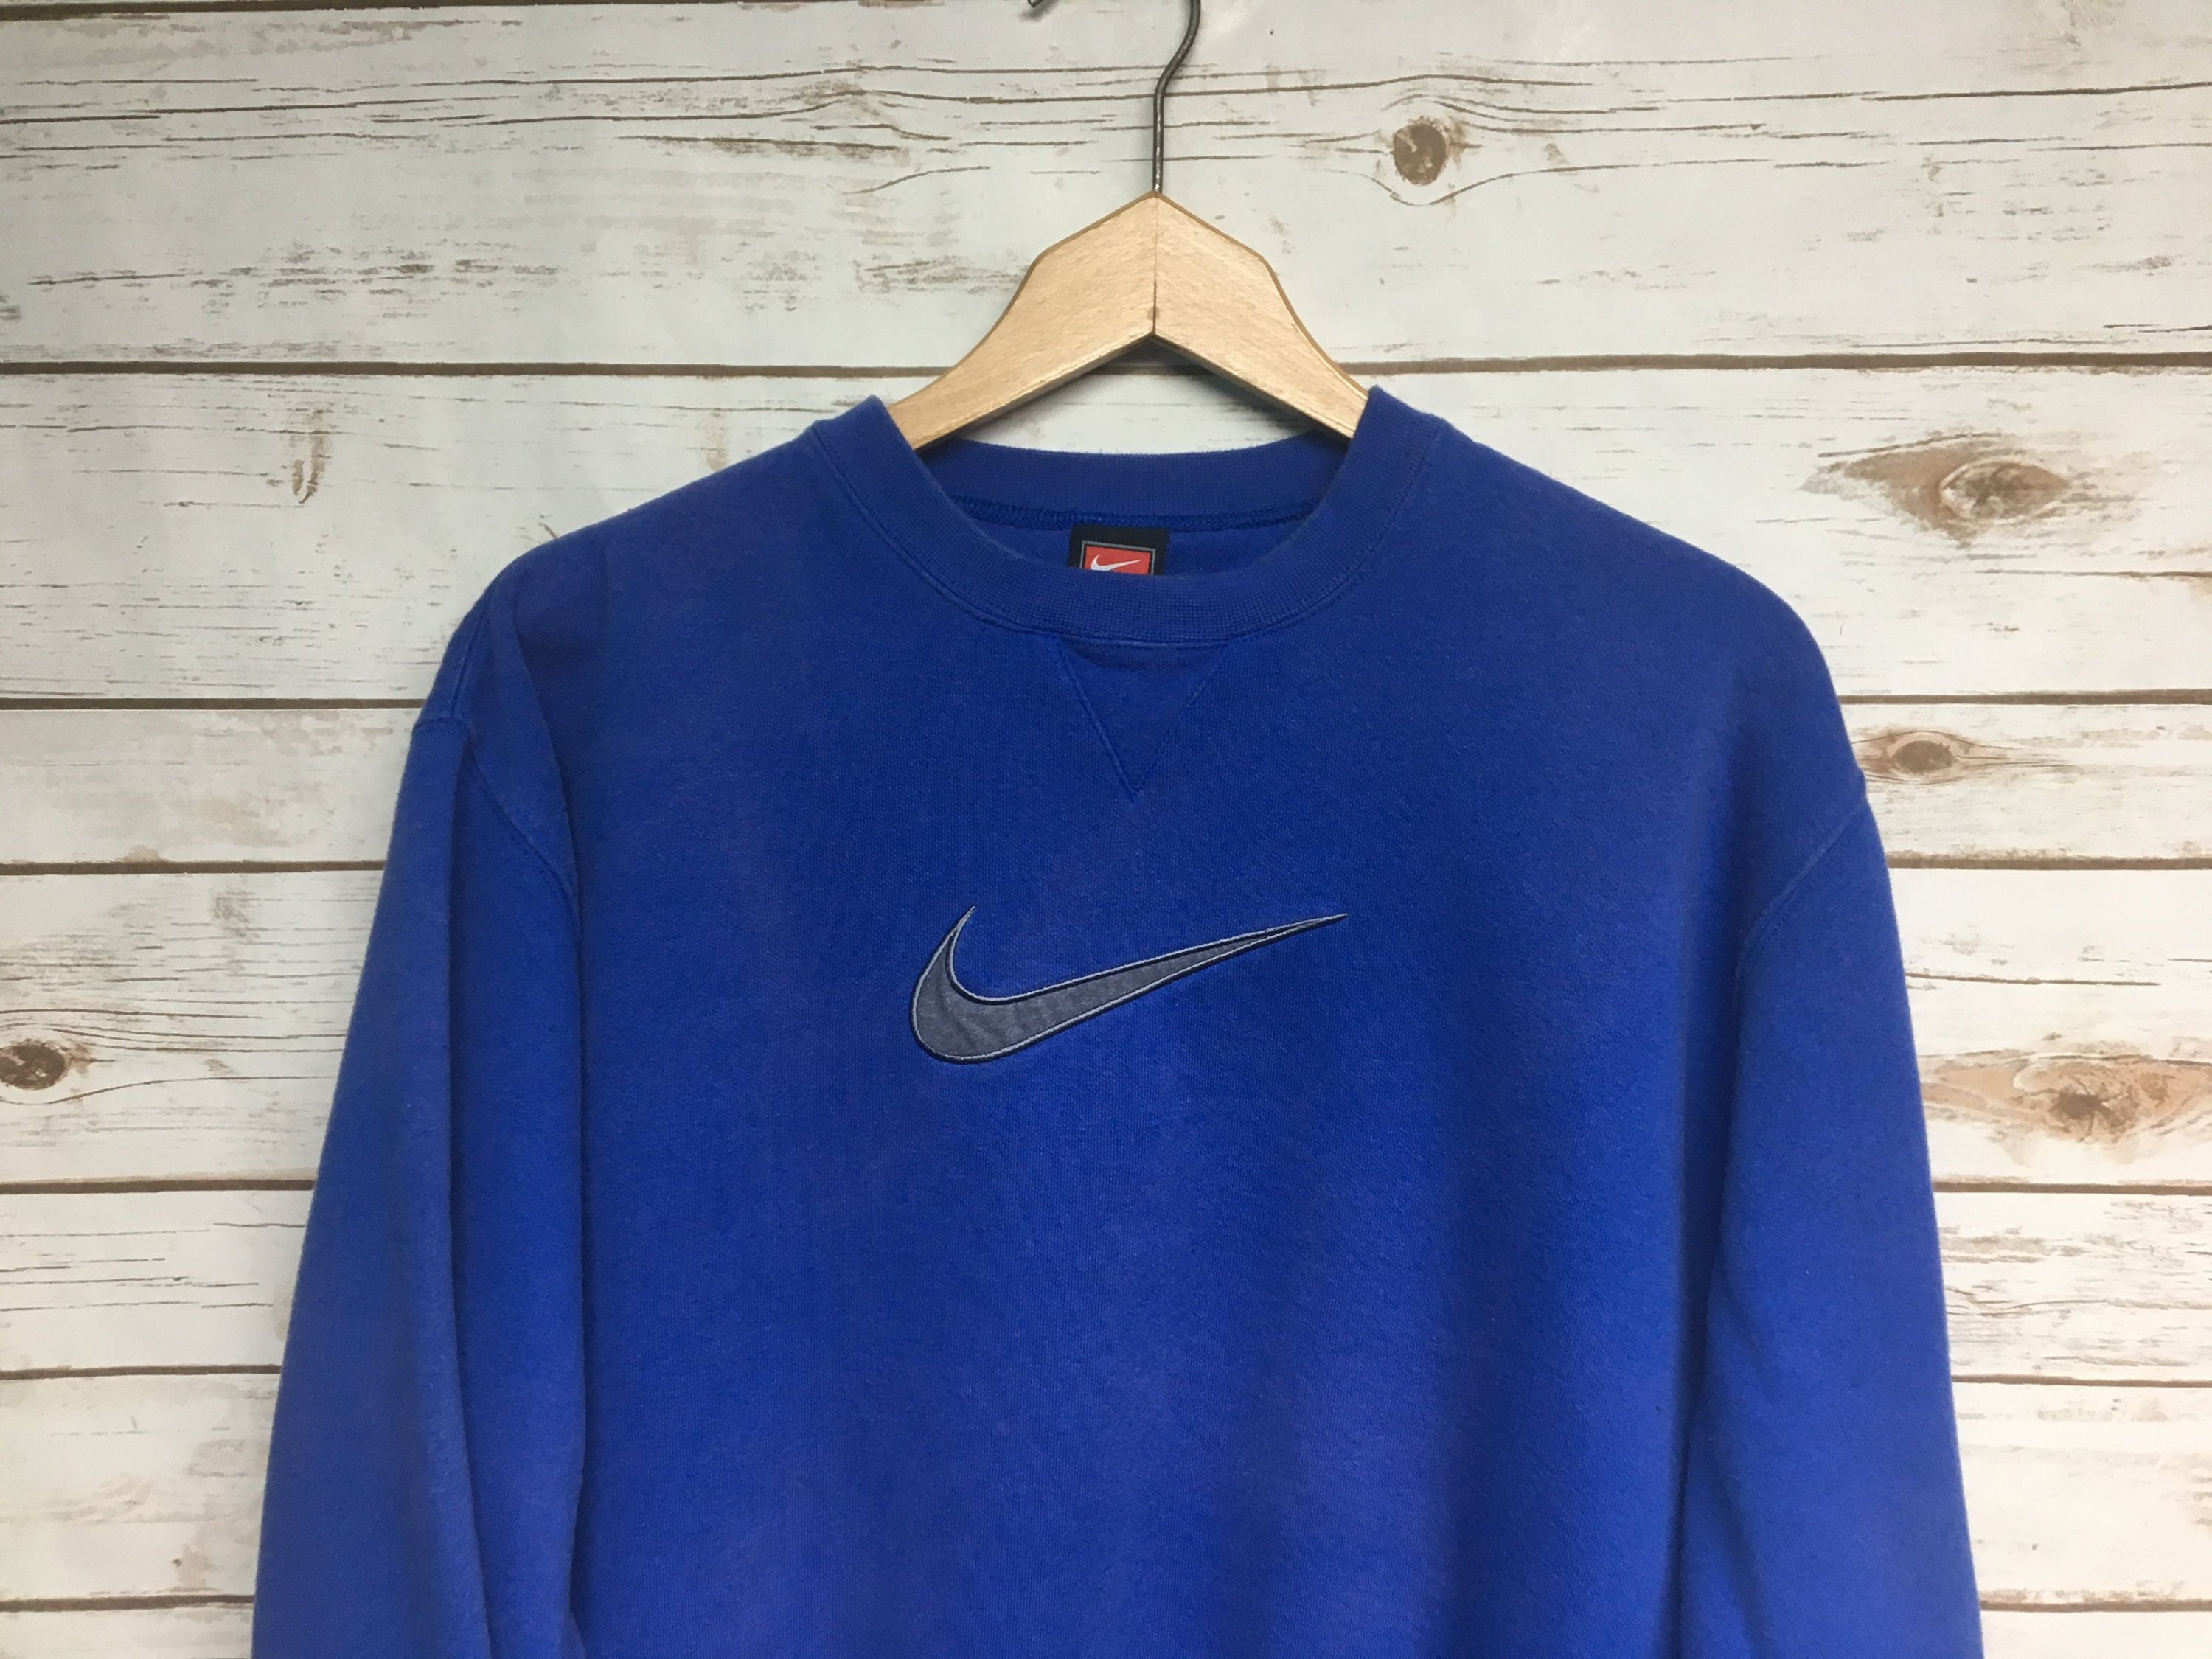 Vtg 90's Nike crewneck sweatshirt Faded blue Nike swoosh embroidered crew neck sweatshirt Just Do It Nike team Medium